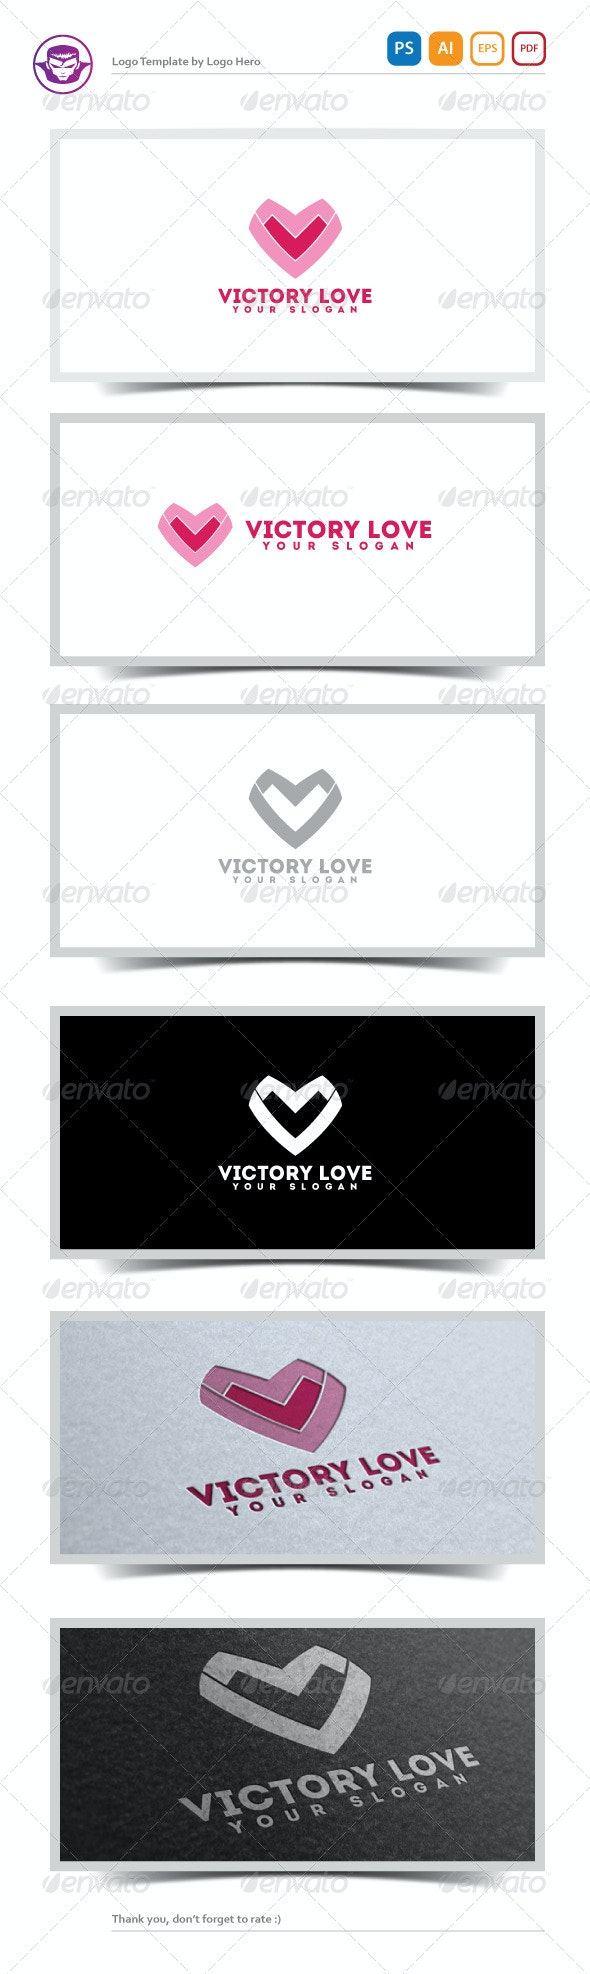 Victory Love Logo Template - Letters Logo Templates